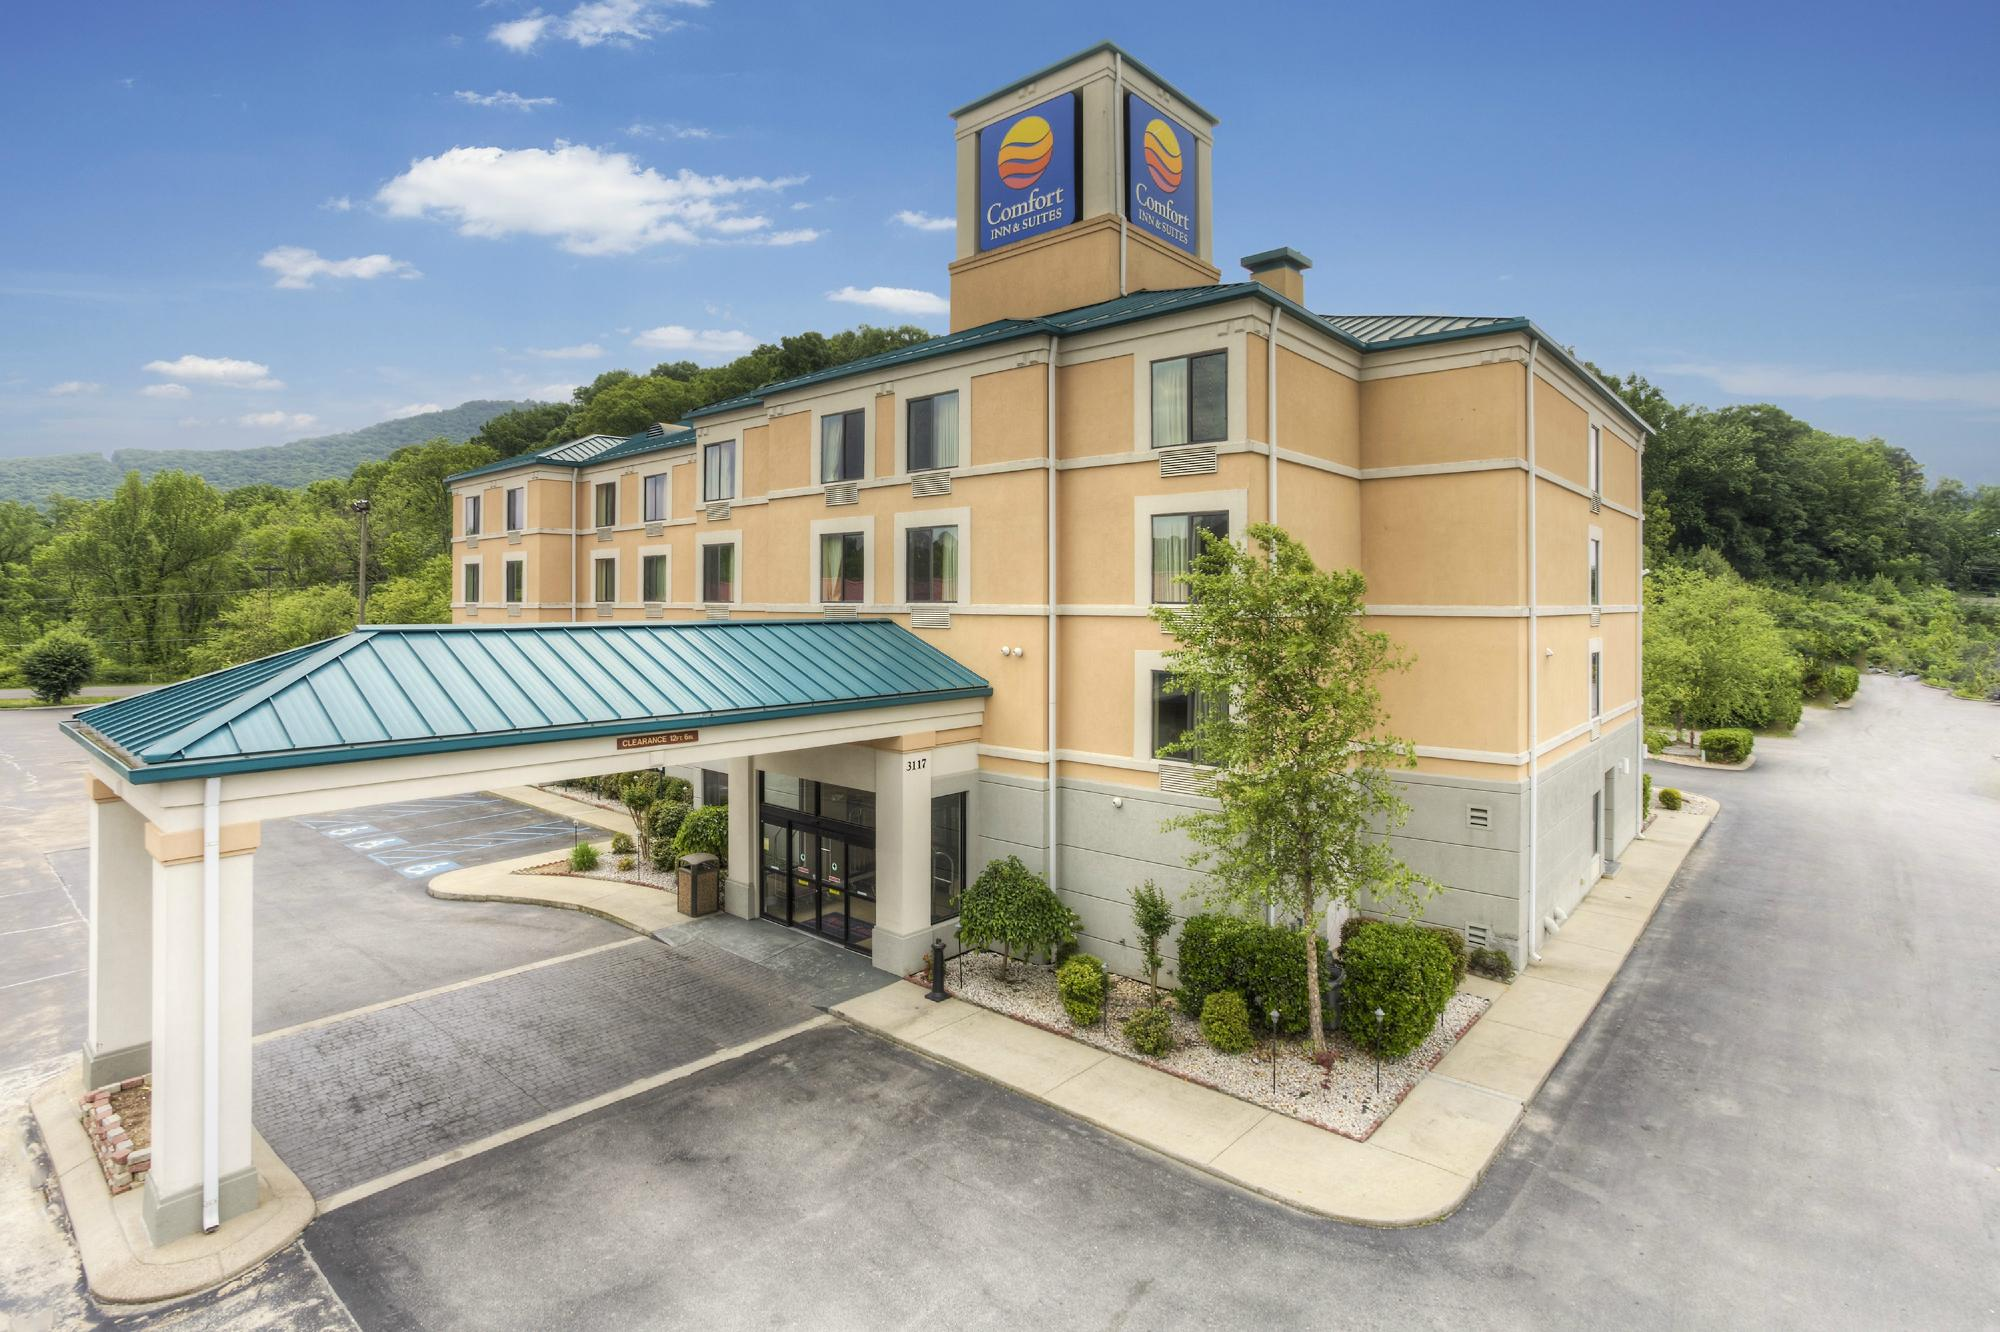 Comfort Inn & Suites - Lookout Mountain